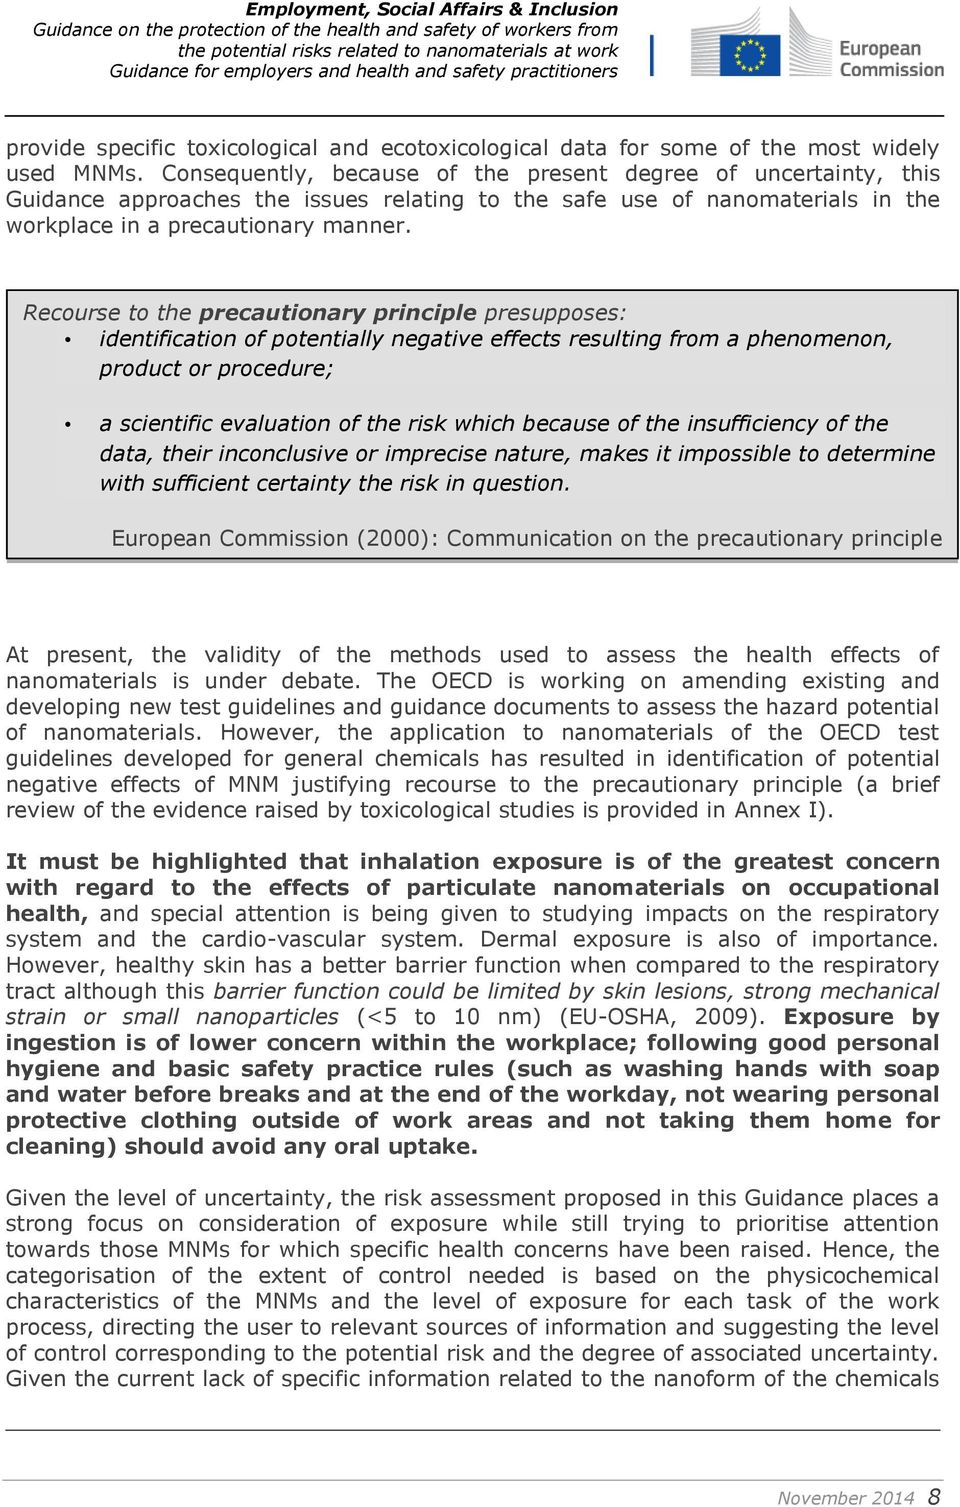 Recourse to the precautionary principle presupposes: identification of potentially negative effects resulting from a phenomenon, product or procedure; a scientific evaluation of the risk which